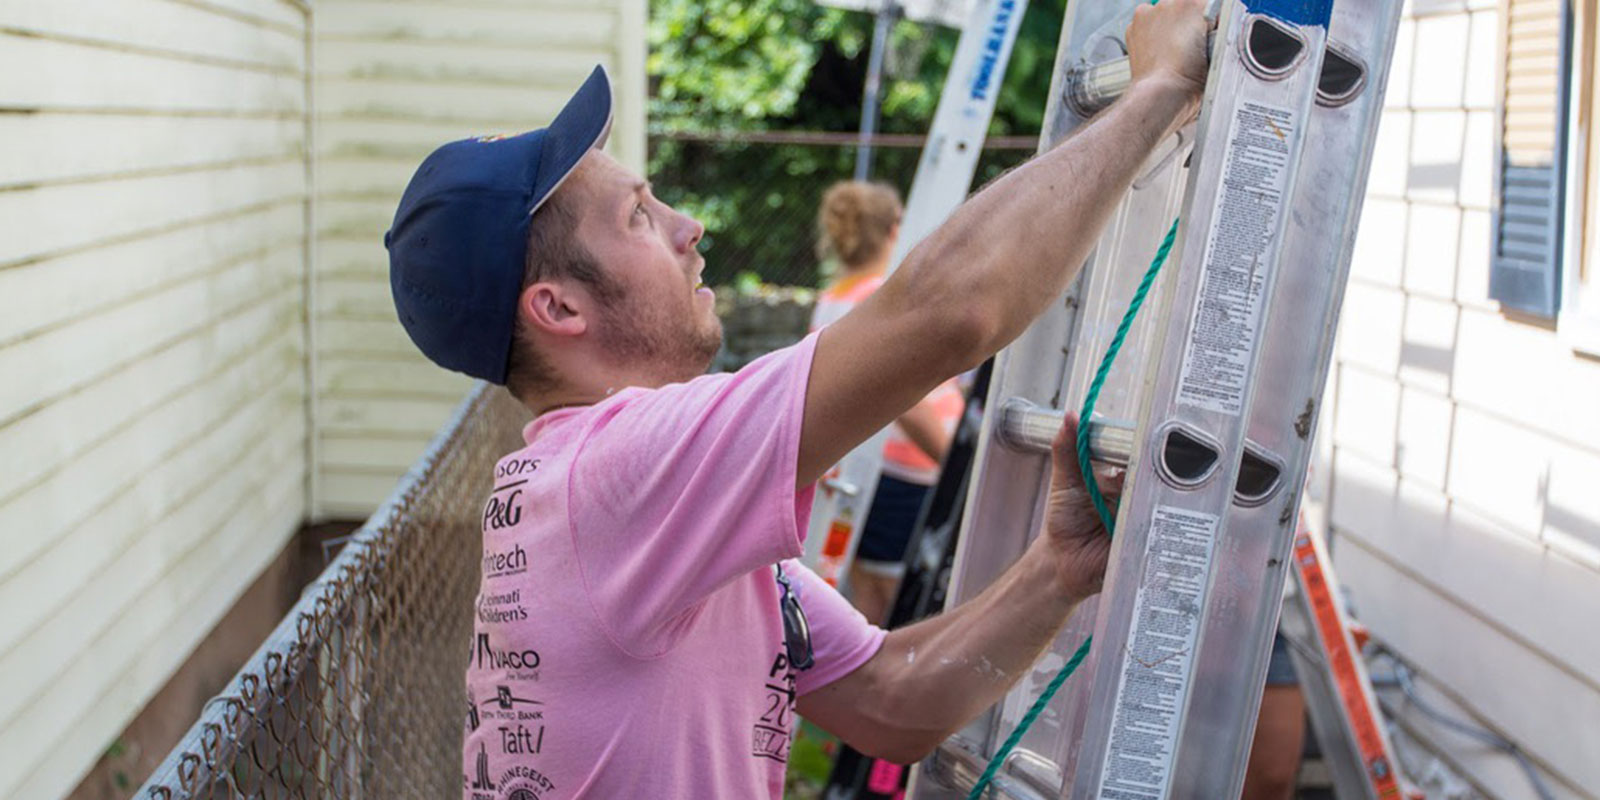 Paycor employee standing on ladder working for community service